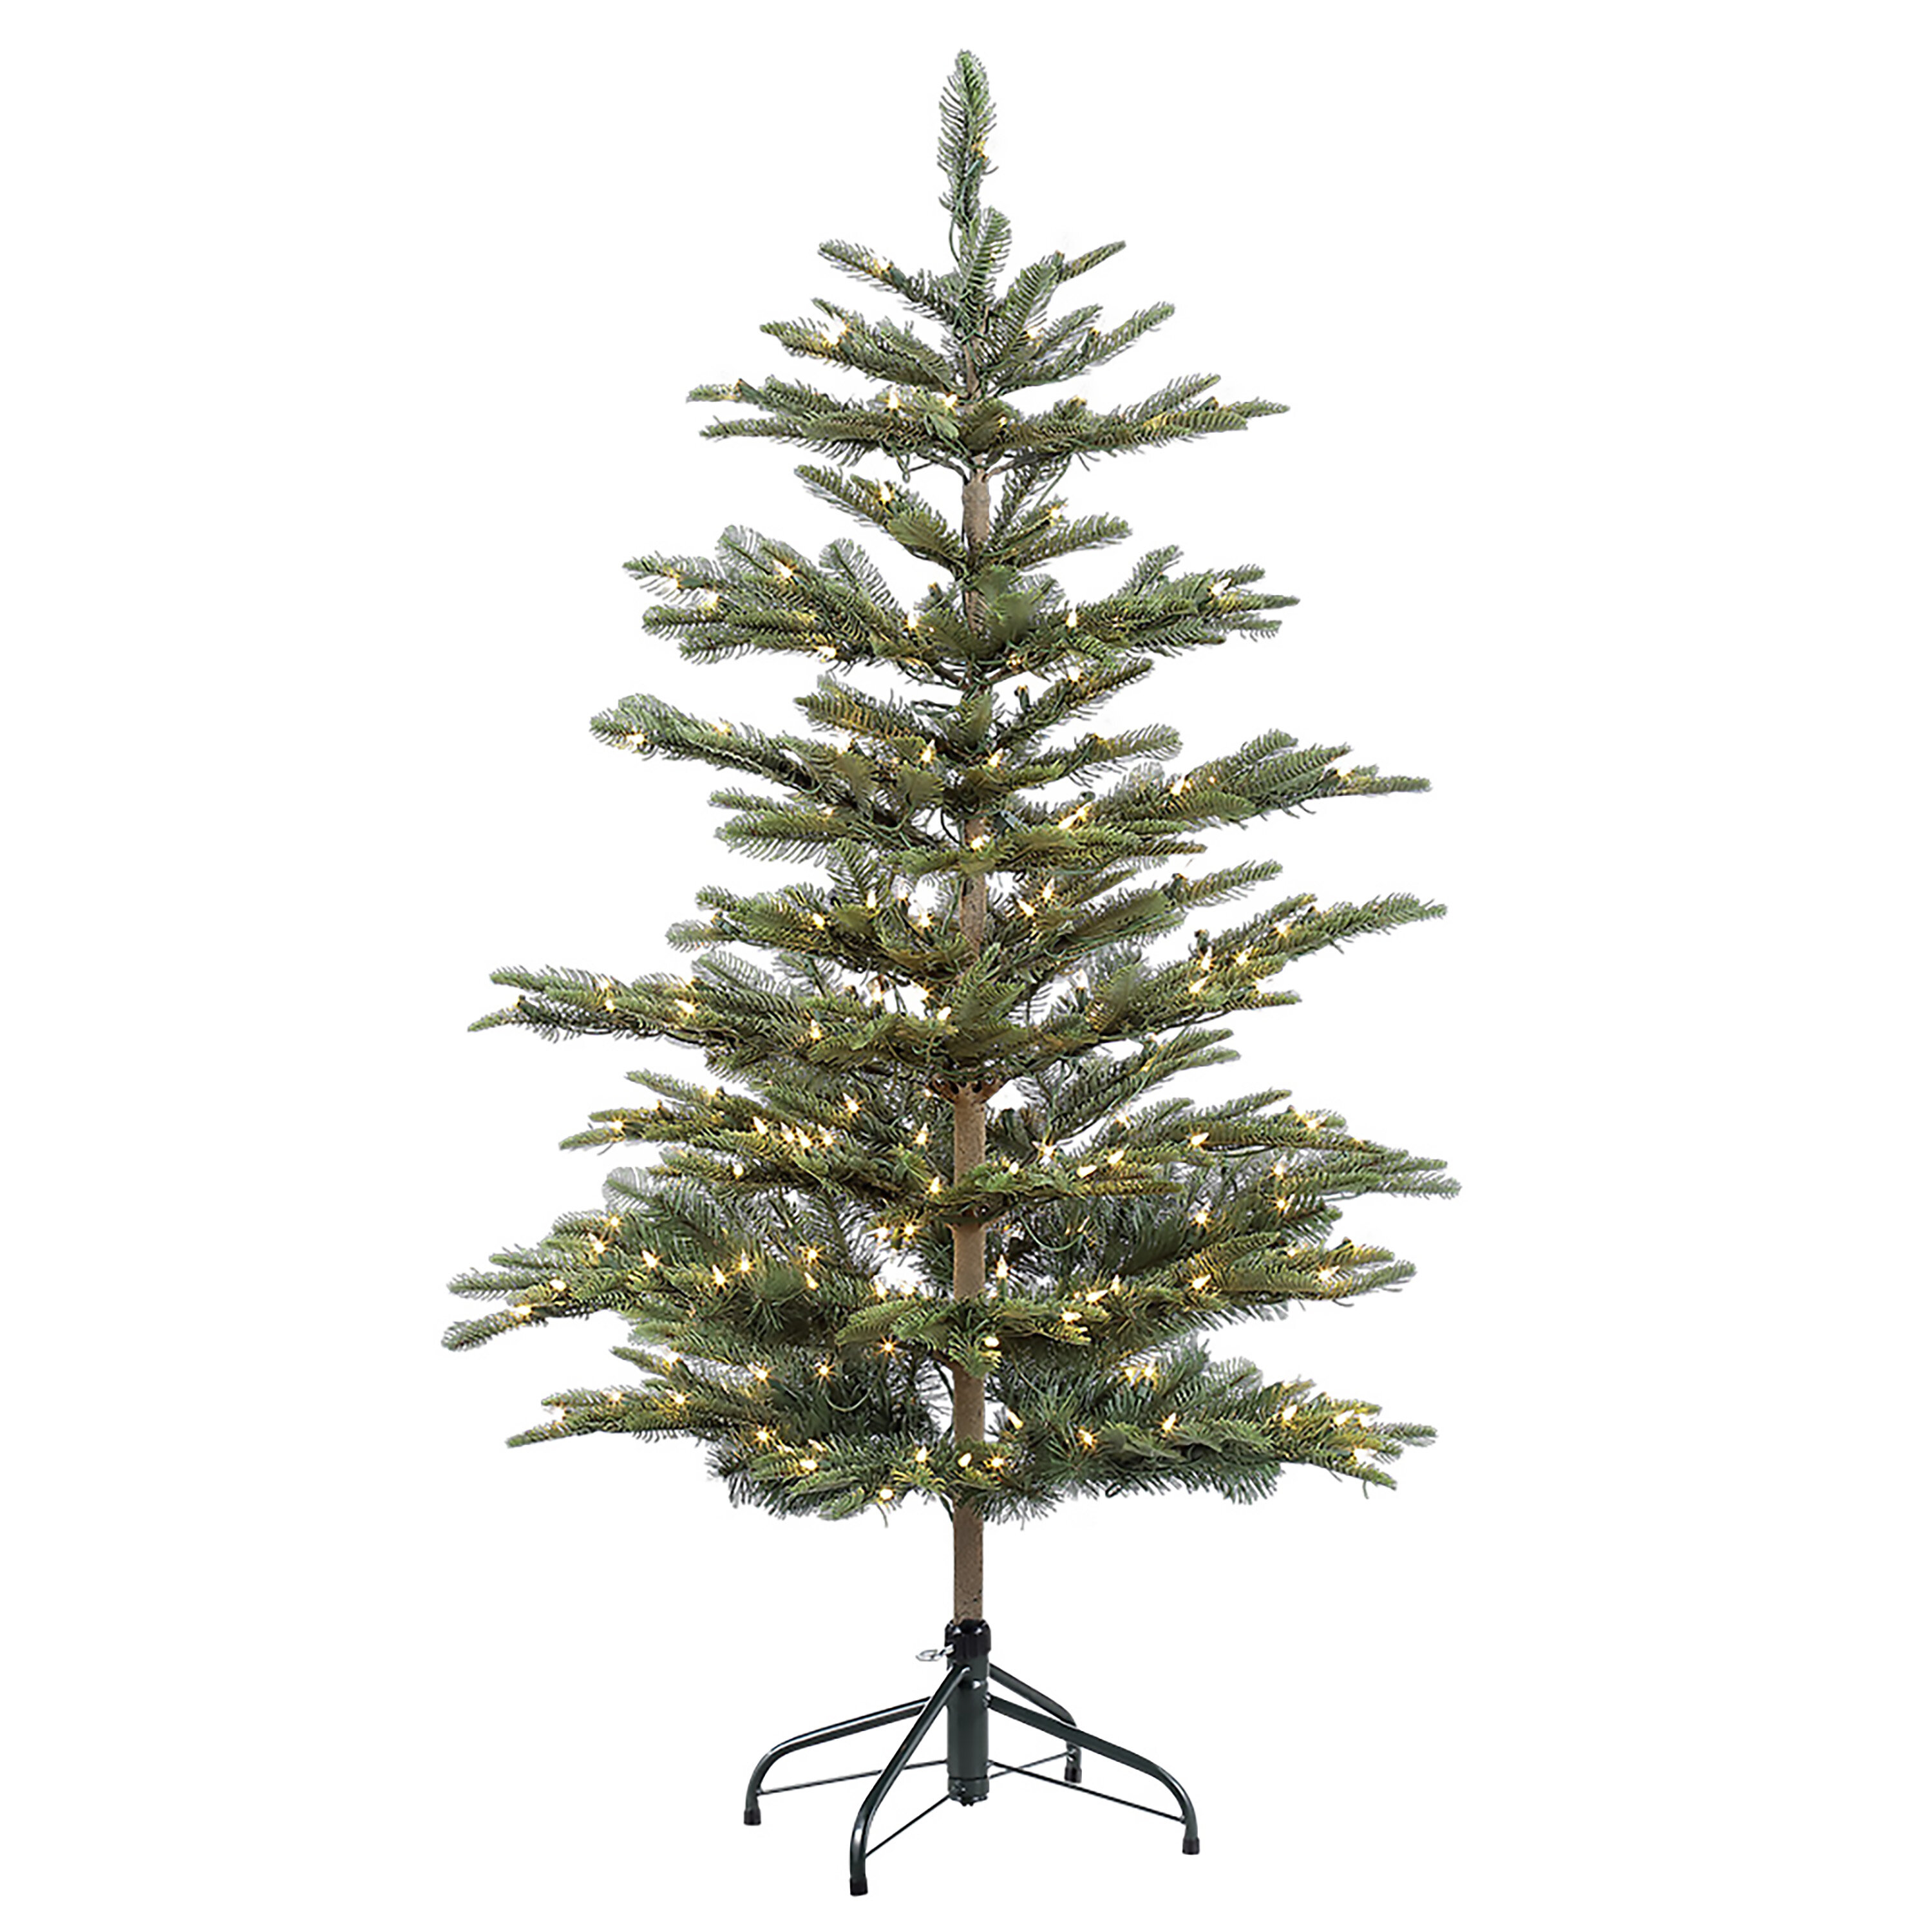 Sparse Christmas Tree Artificial.Pre Lit Aspen 4 5 Green Fir Artificial Christmas Tree With 250 Clear Lights With Stand